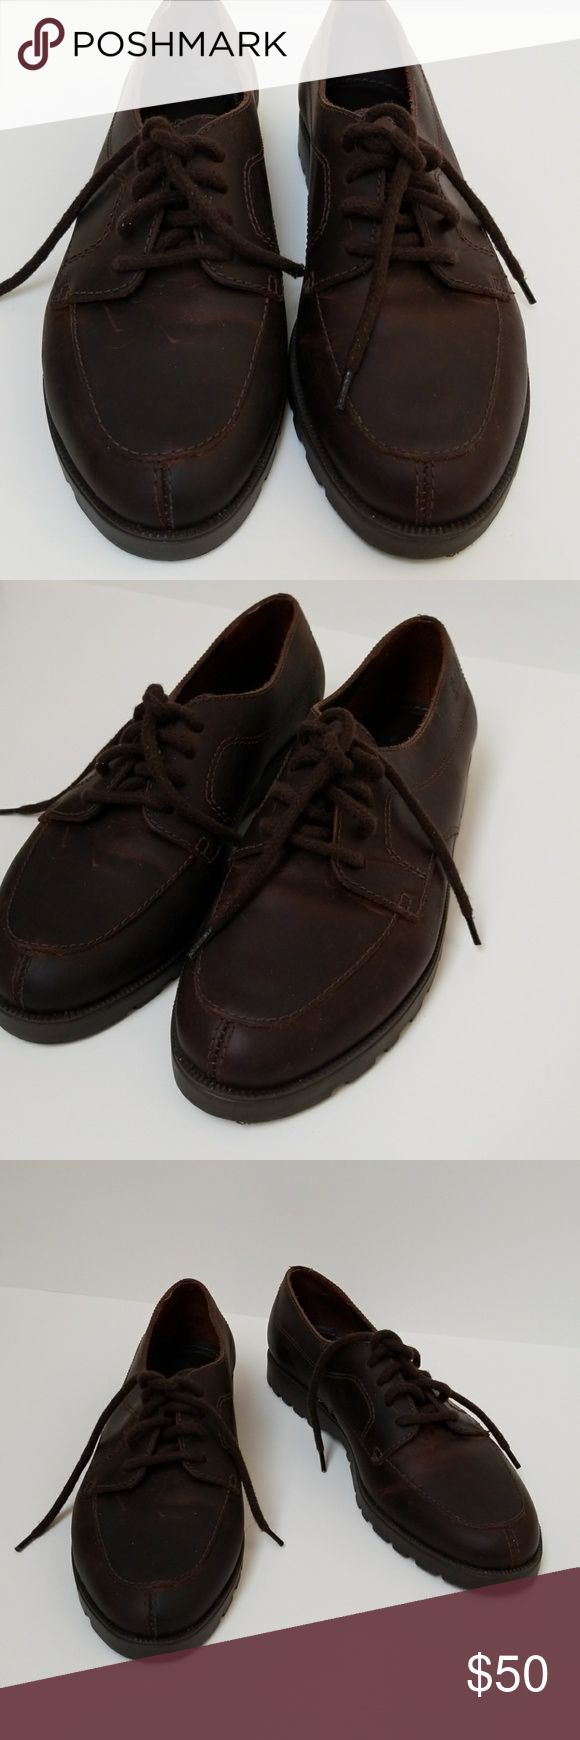 """Bass Leather Oxford Women's Shoes Bass Leather Oxford Women's Shoes. Size 8, brown, 4 eye lace-up, genuine leather upper, non-marking outsole, 1"""" heels, made in Brazil, offers long term wearability and style. EUC Bass Shoes"""